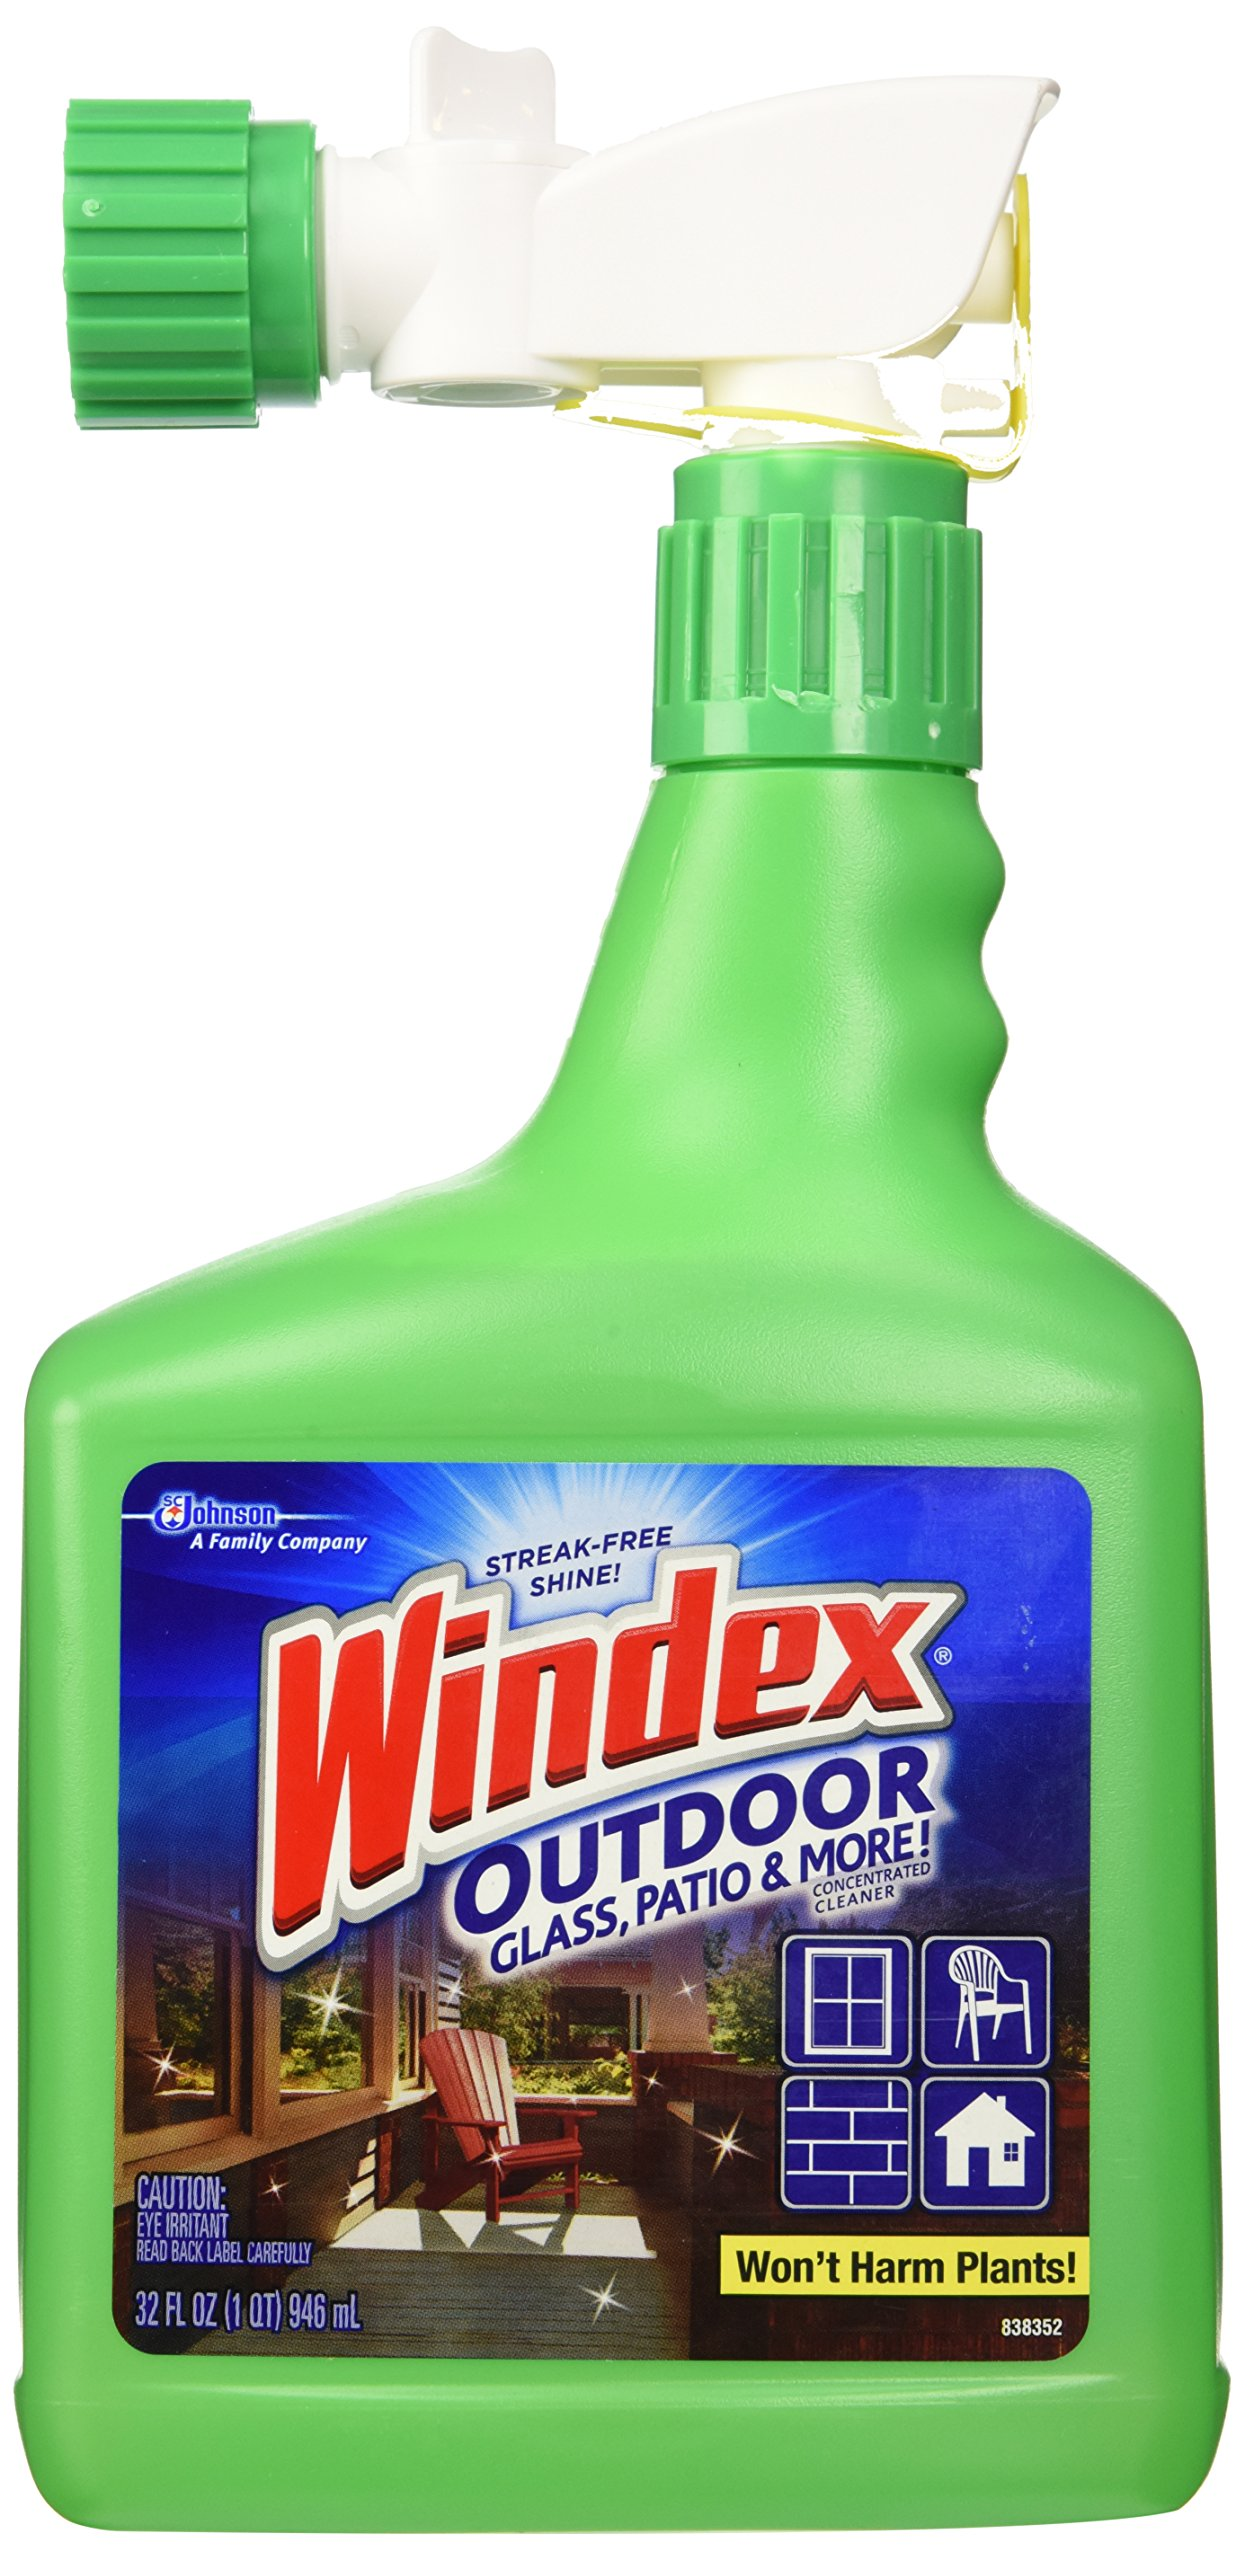 Windex Outdoor Glass & Patio Cleaner 32Oz 1 2